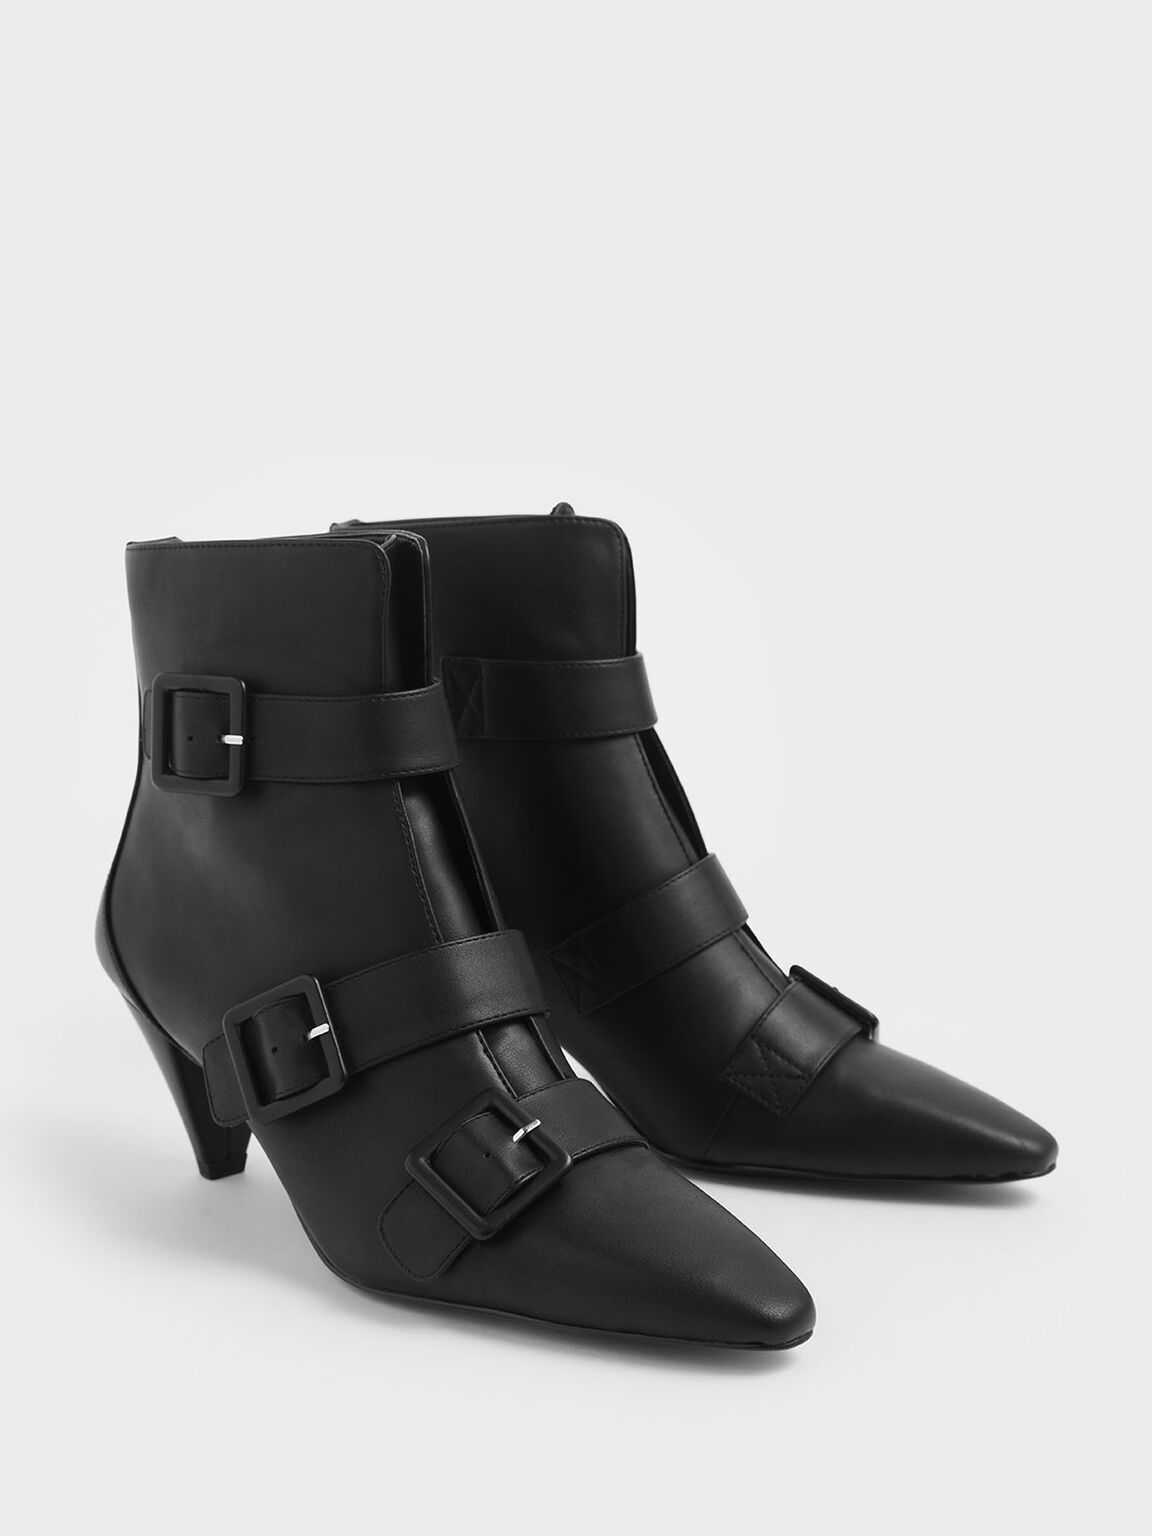 Buckle Strap Corduroy Cone Heel Ankle Boots, Black, hi-res